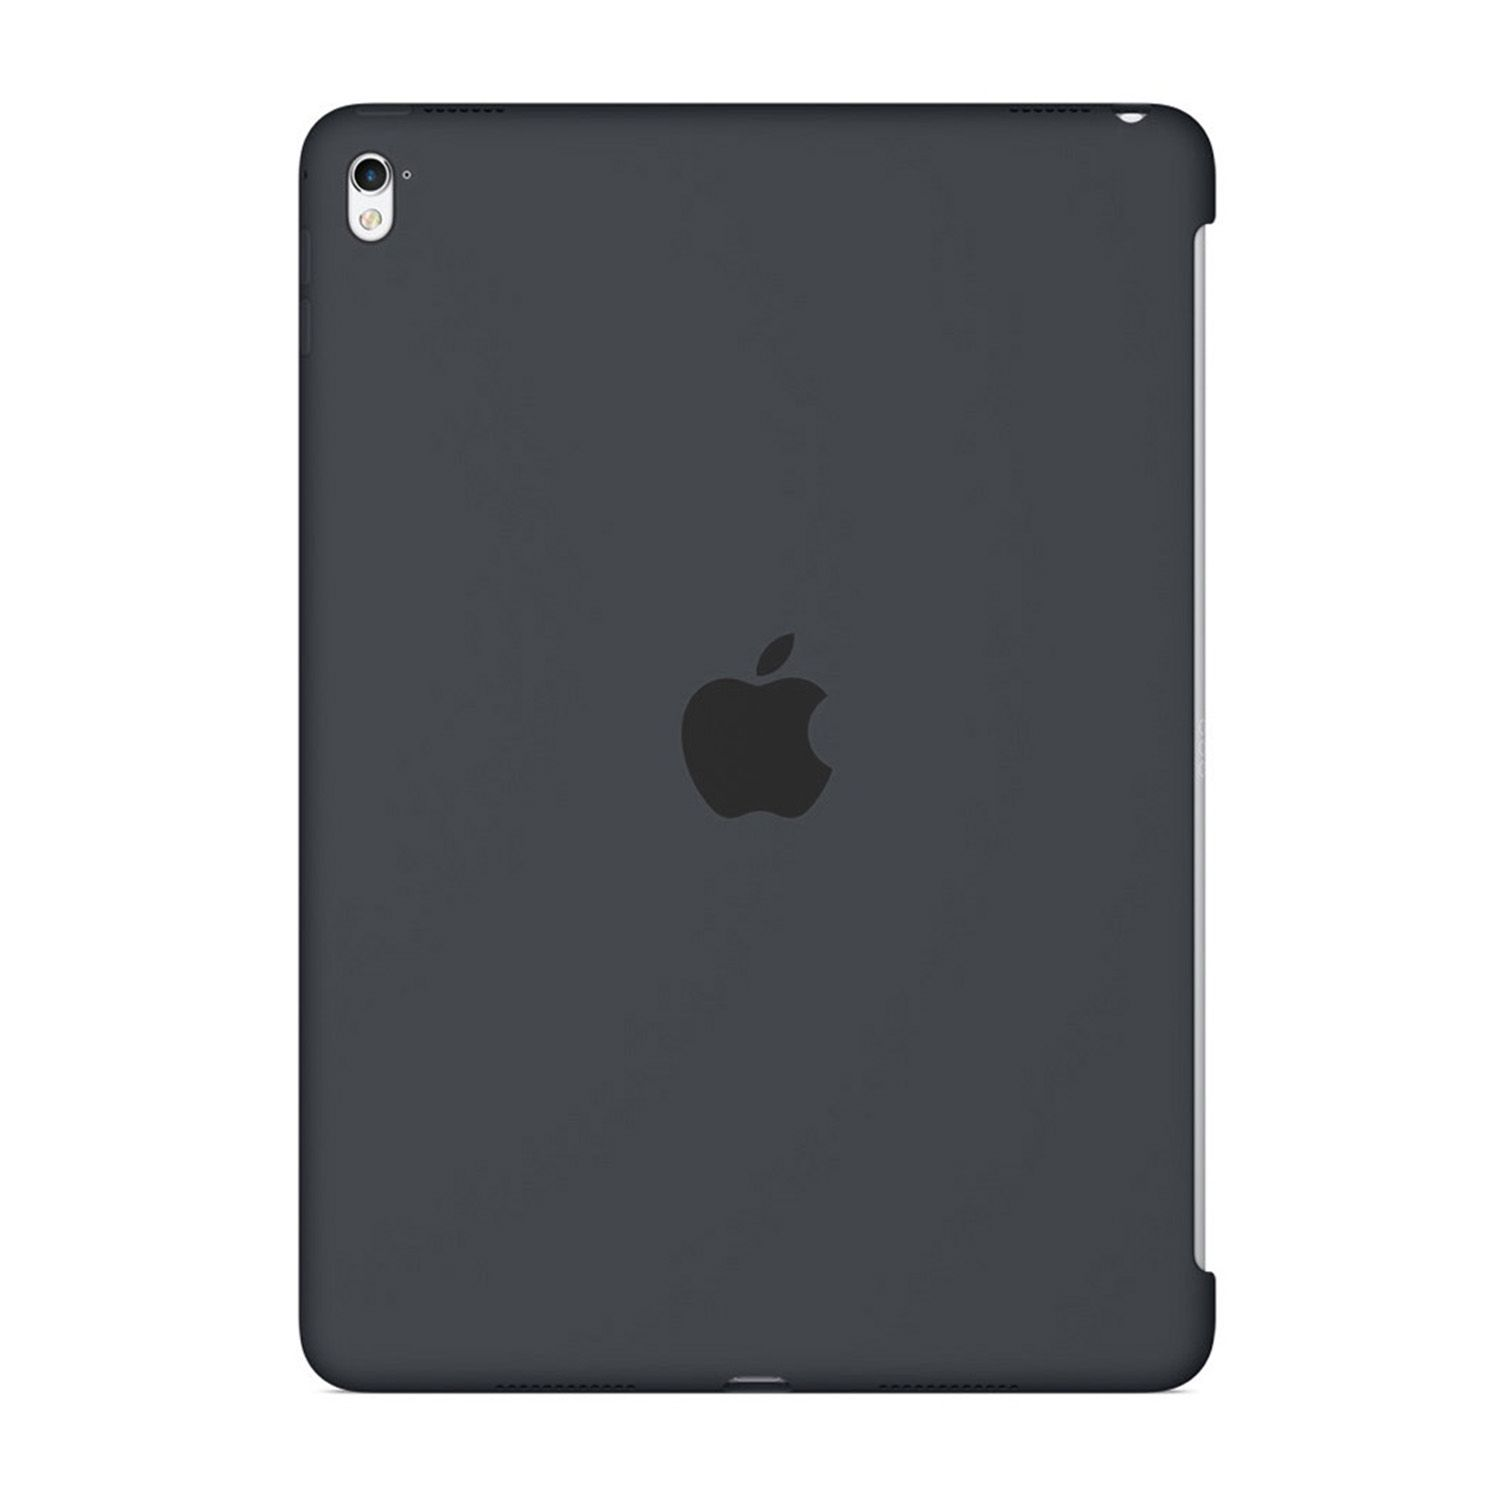 Apple iPad mini 4 Silicone Case IPad Cases - Electronics Accessories, | Kohl\u0027s